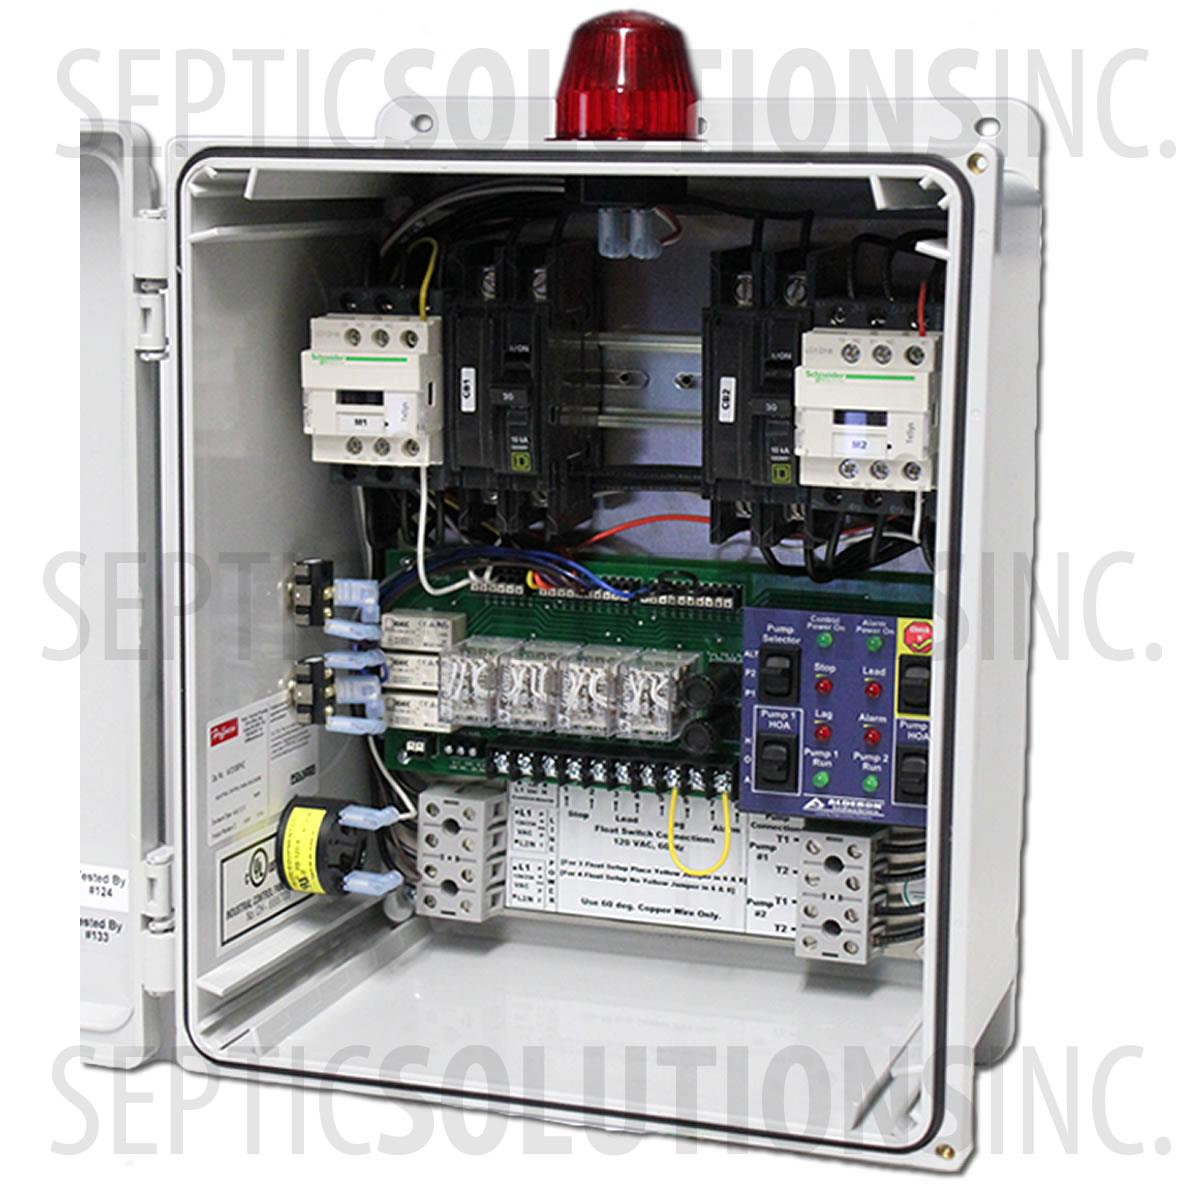 Liberty Pump Control Panels Wiring Diagram Master Centripro Box Duplex Sewage Free Same Day Shipping Rh Septicsolutions Com Panel